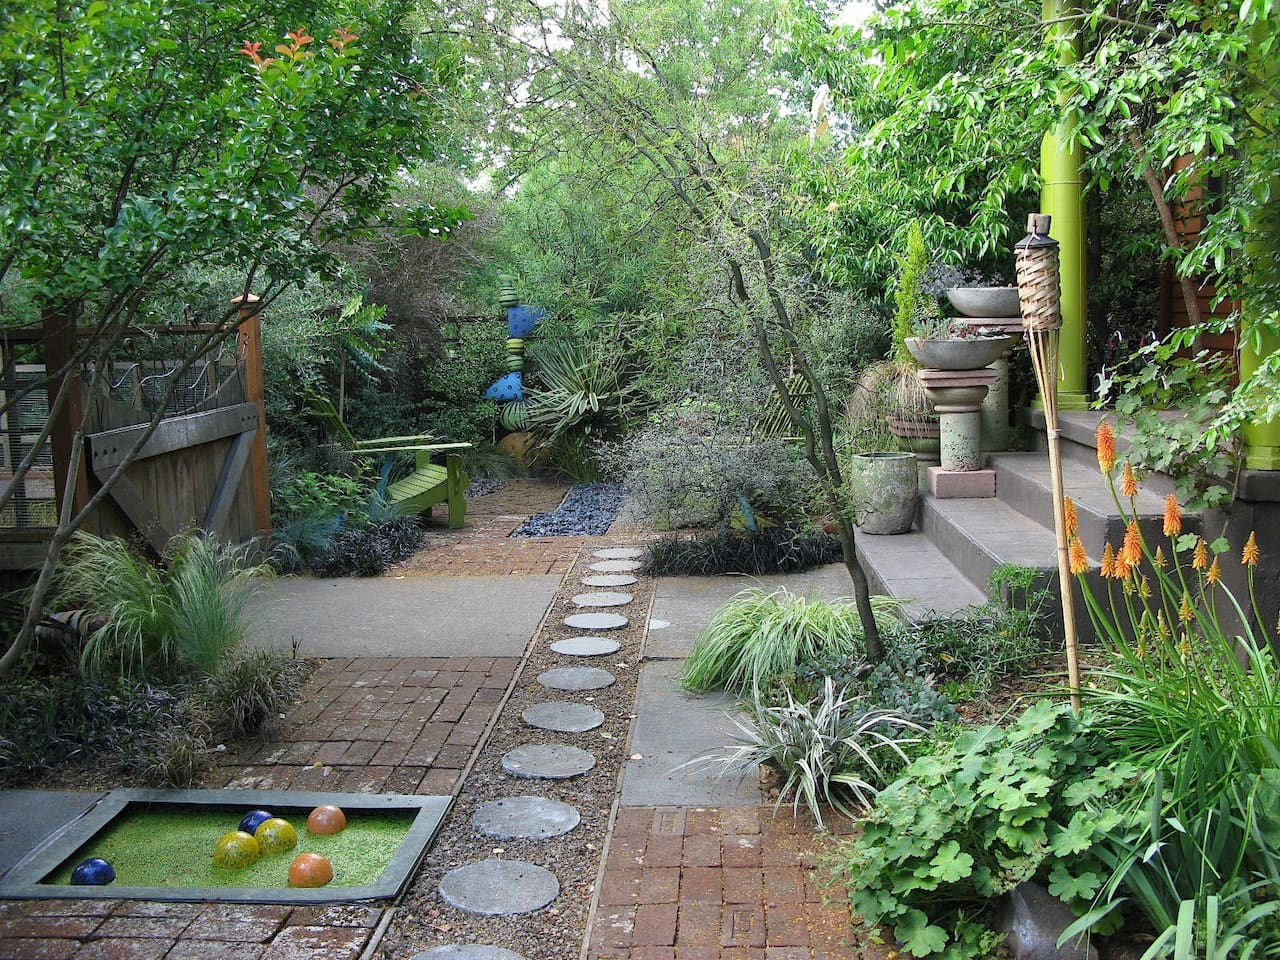 It's hard to believe this botanical oasis is in the middle of the city, but it's true. We planted it!